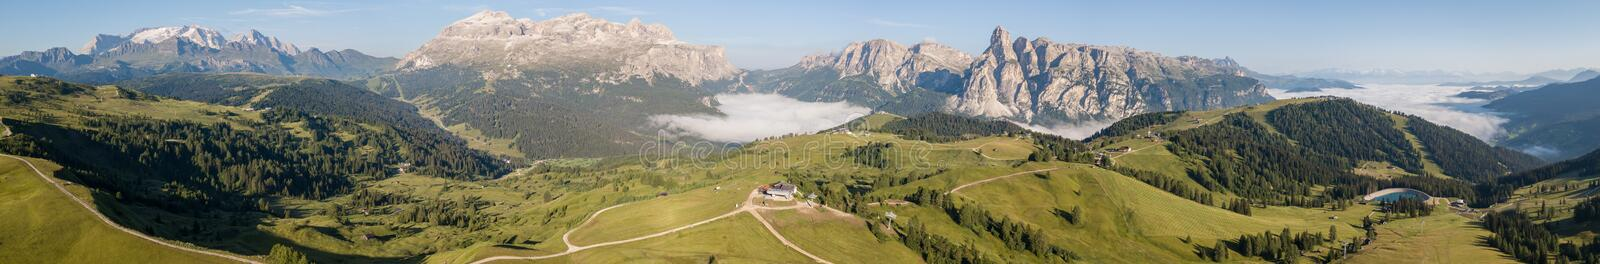 Dolomites, Italy. Amazing drone aerial landscape at Sella, Gardenaccia and Marmolada massifs. Fog at the bottom of the valley royalty free stock images